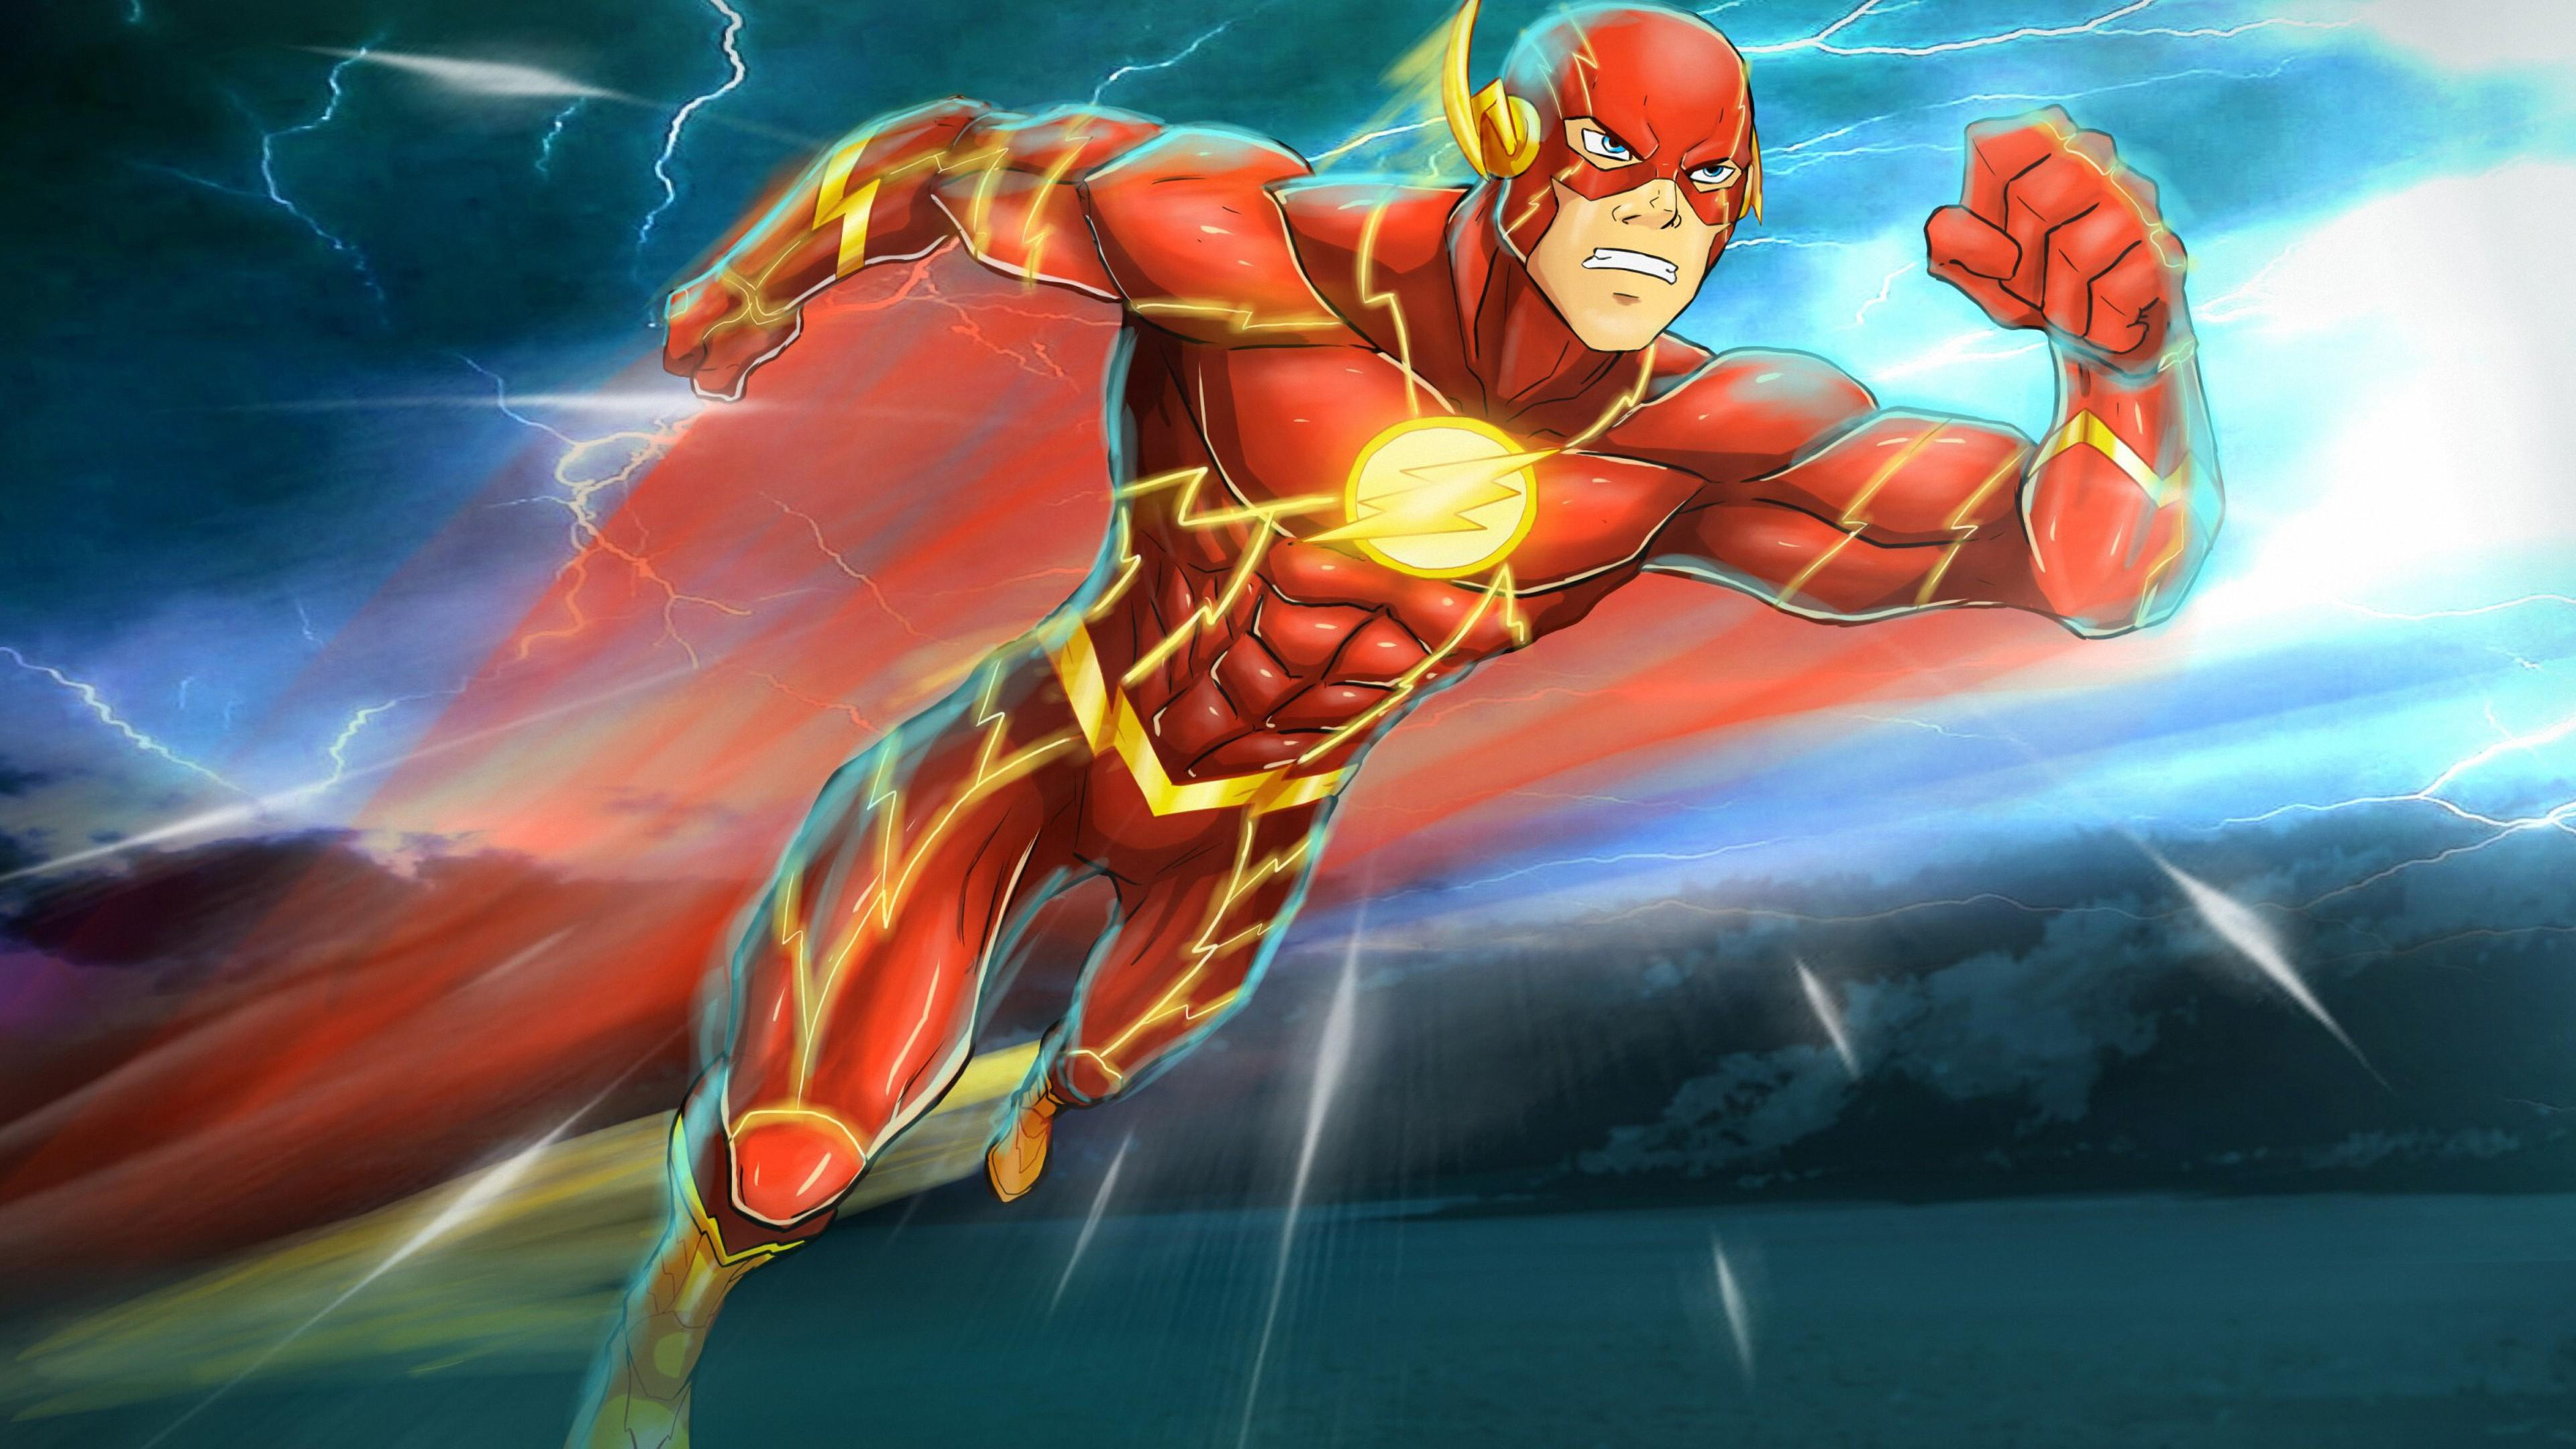 The Flash 4K Wallpapers - Top Free The Flash 4K ...